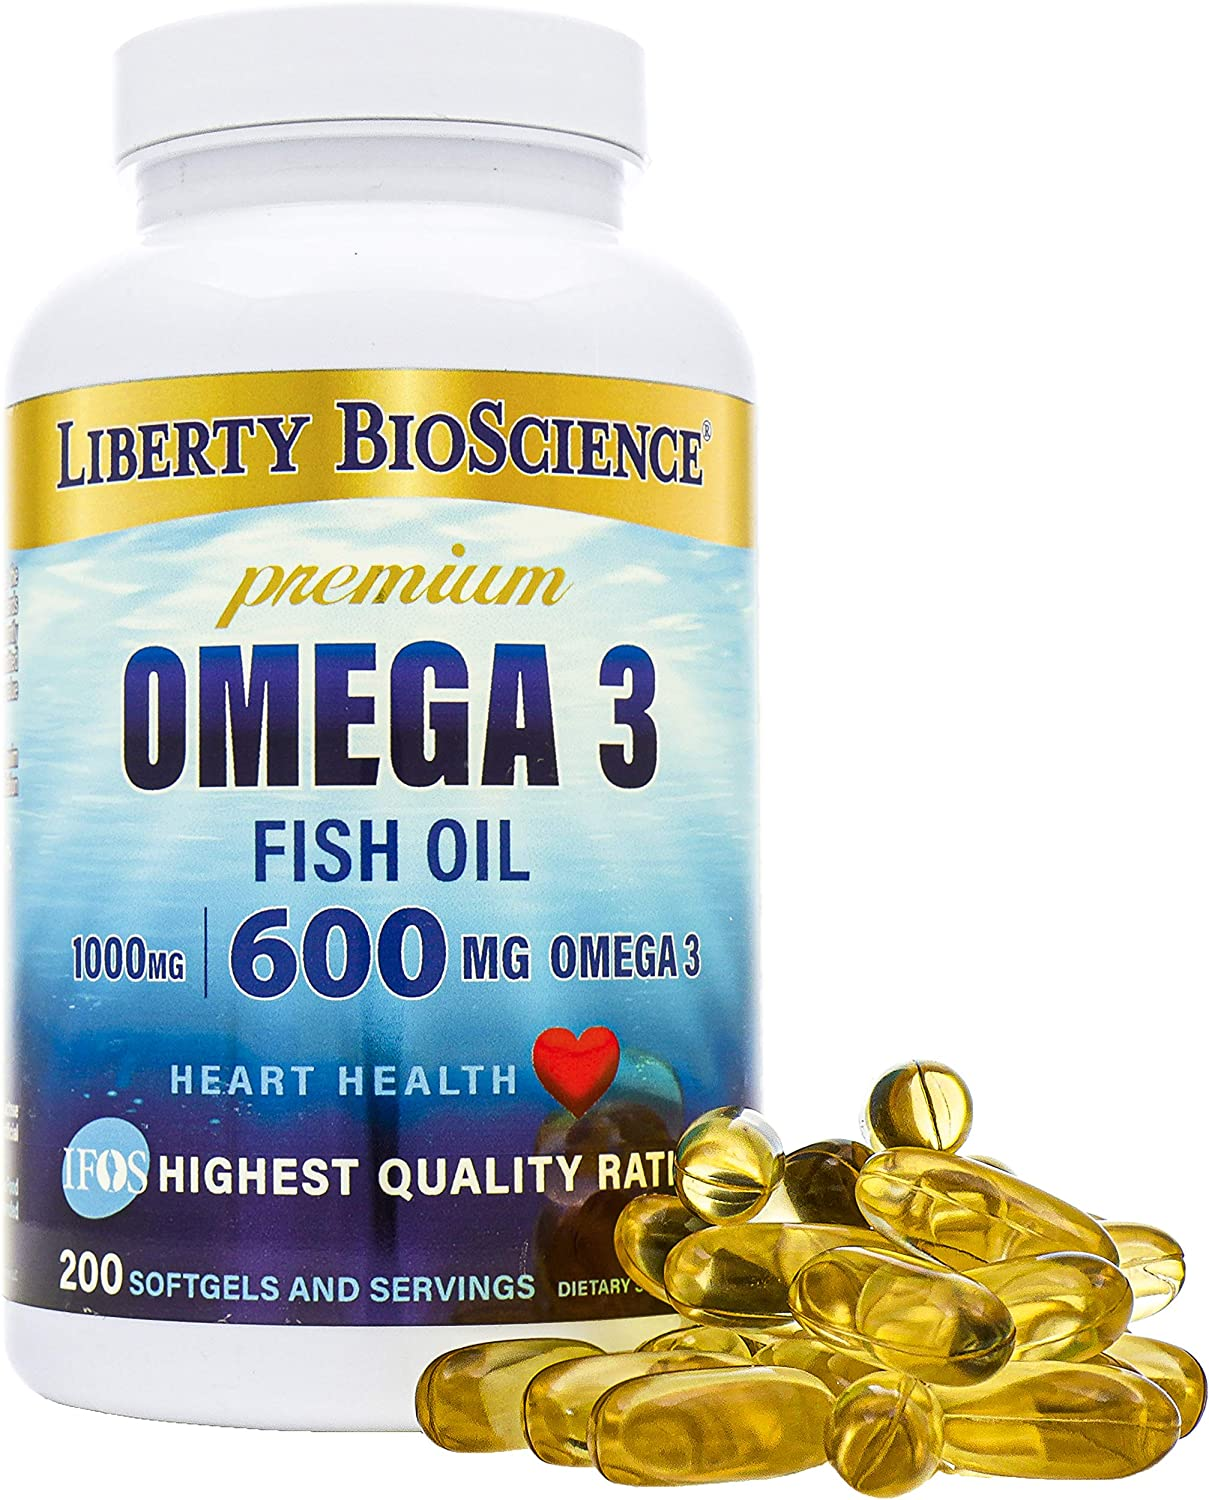 Liberty Bioscience Extra Strength Omega 3 Fish Oil Supplement, 600mg of Omega-3 per Softgel, 200mg DHA 300mg EPA Prenatal Health, 200 Softgels